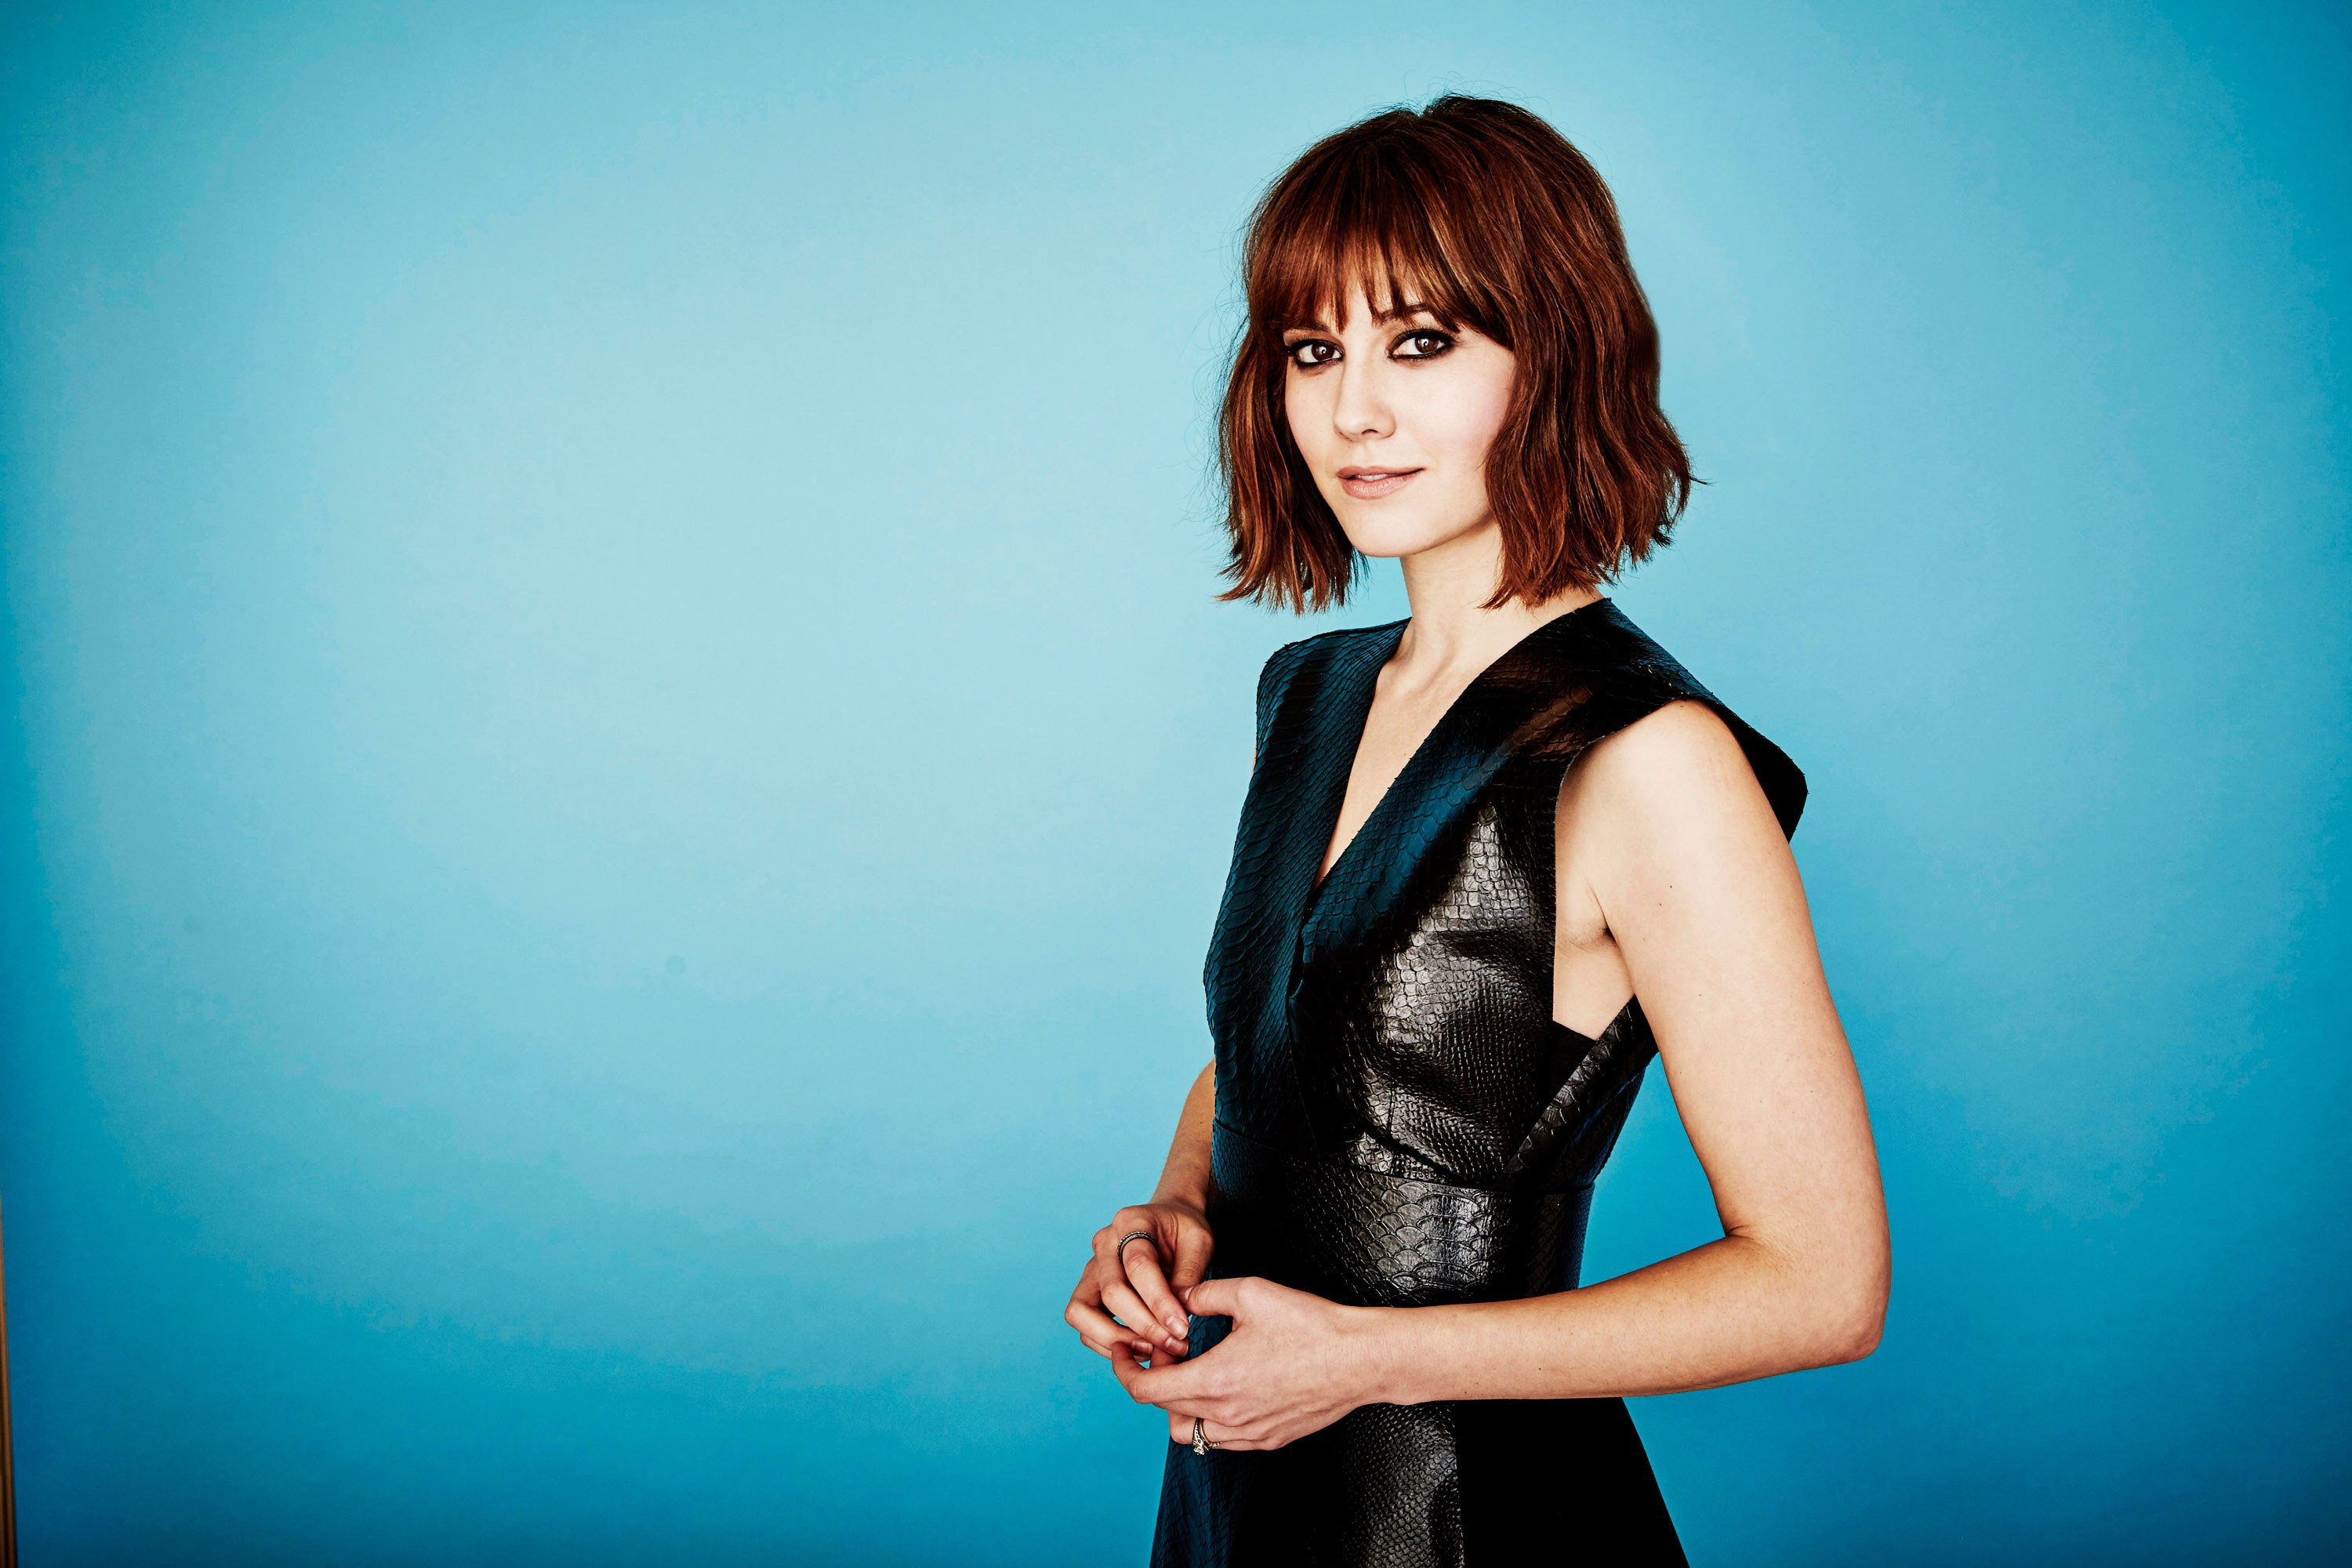 mary elizabeth winstead wallpapers images photos pictures